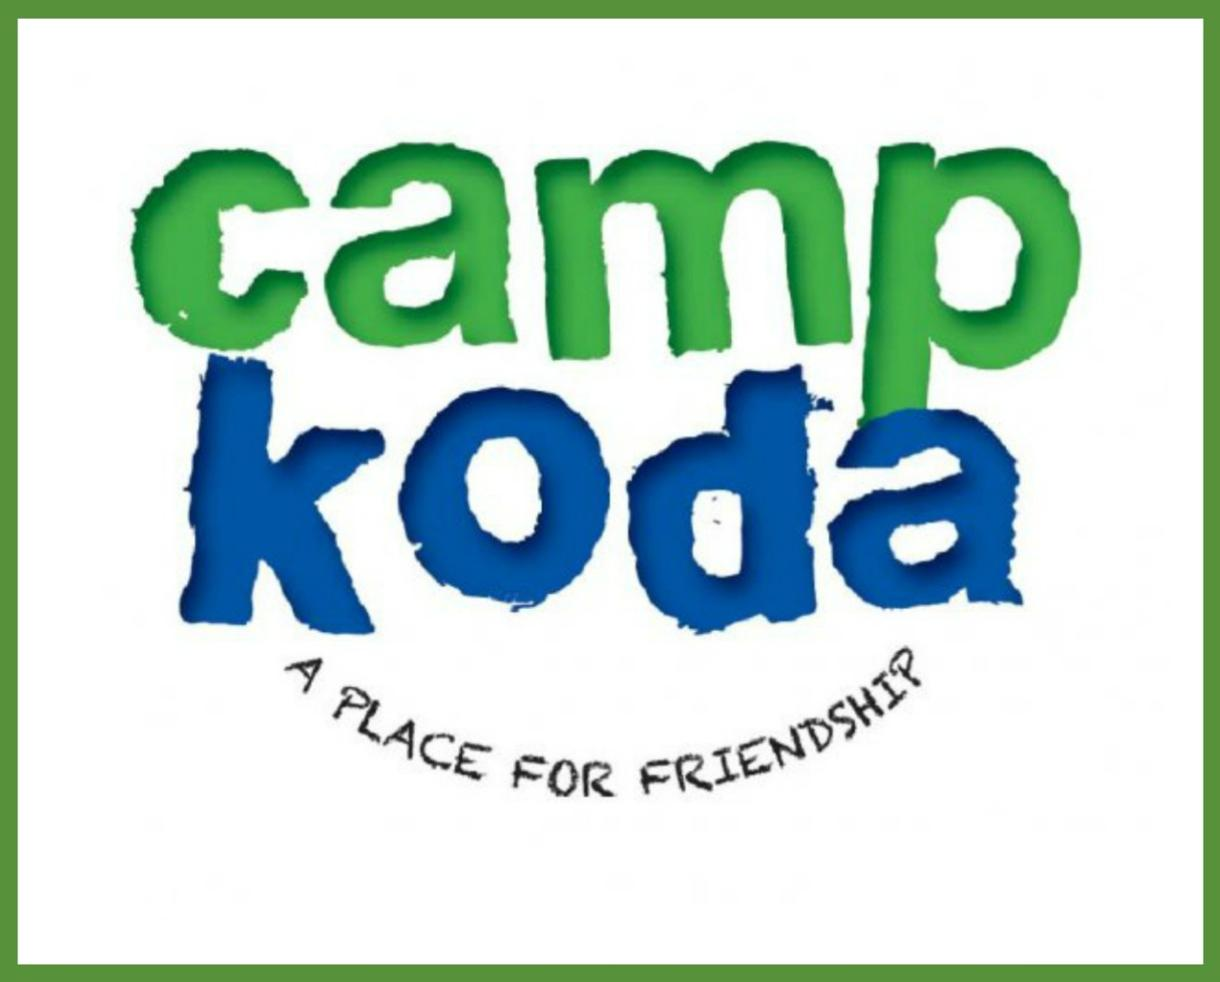 $399 for Camp Koda Equestrian Camp for Ages 4-16 - Leesburg ($100 Off)